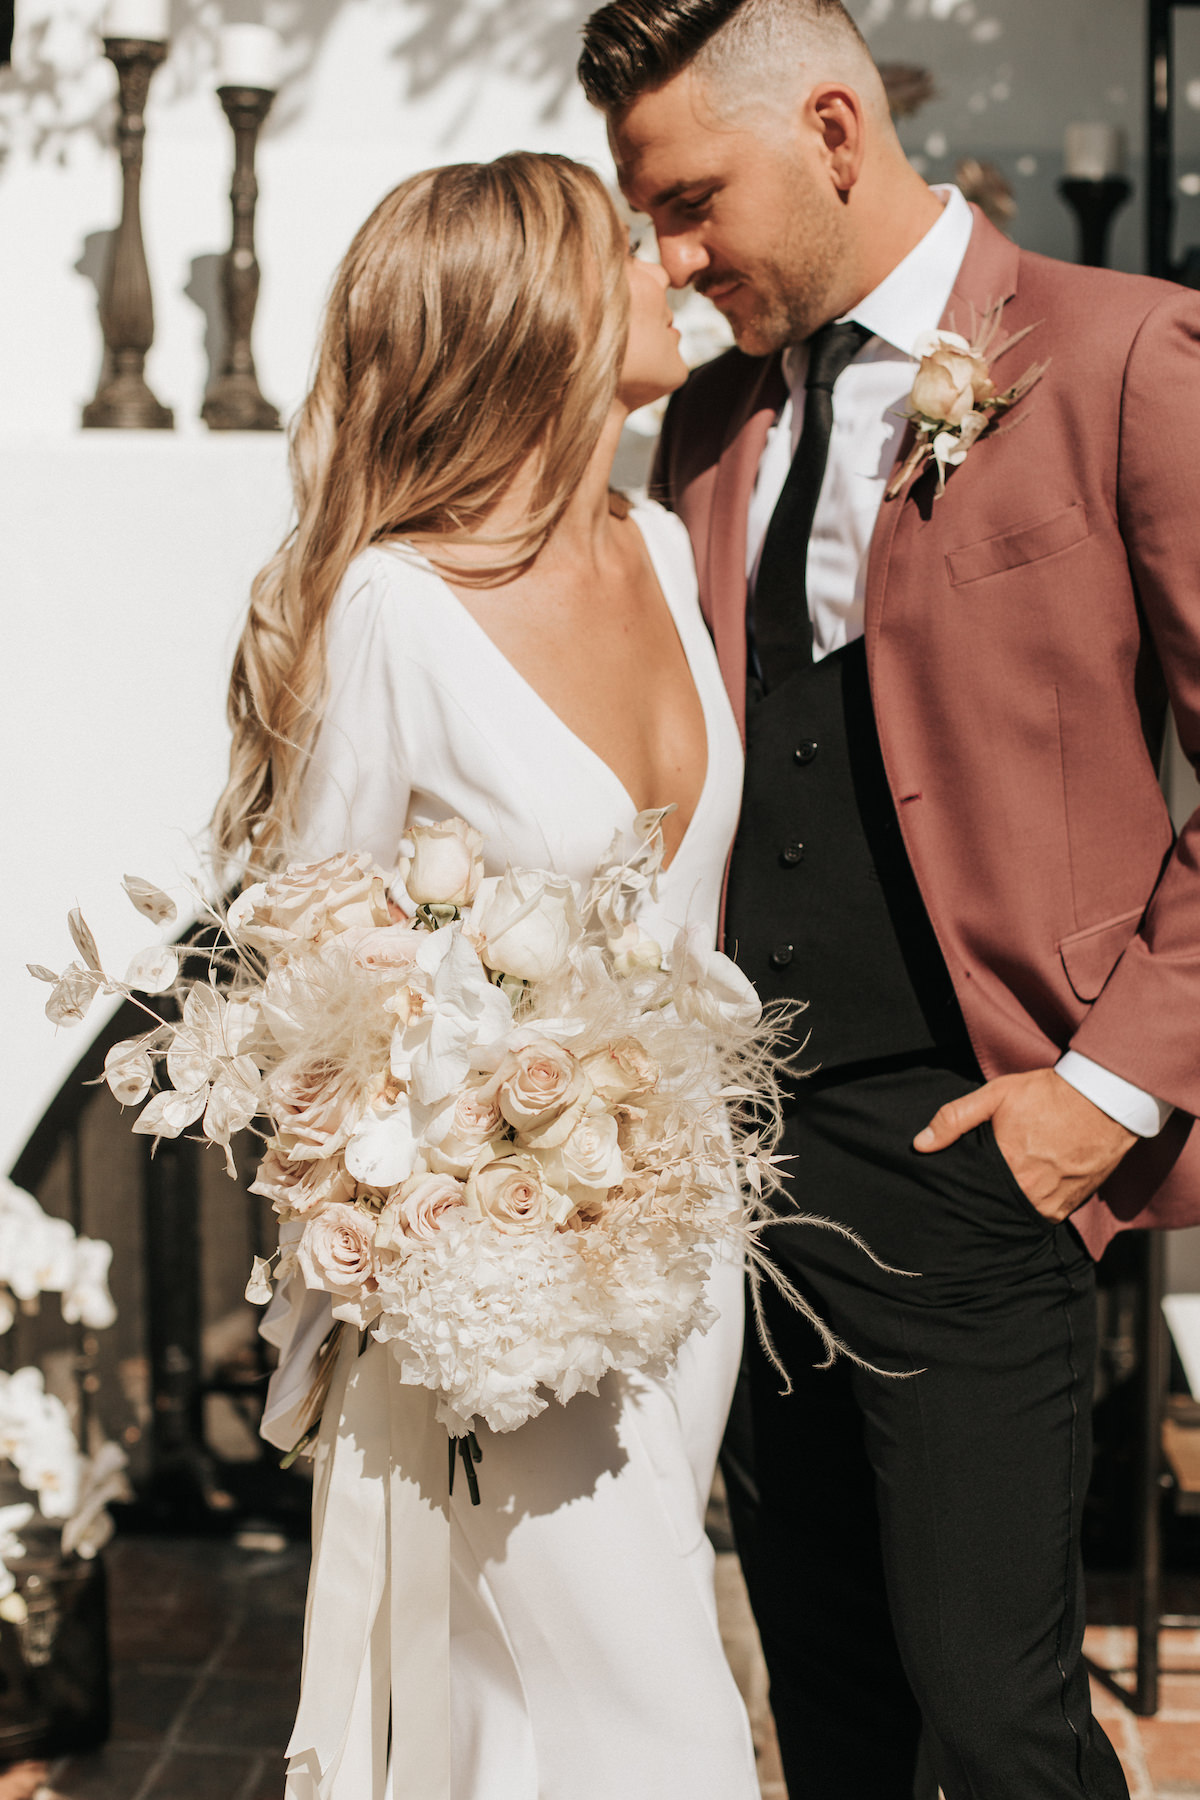 Modern bride and groom photo with blush wedding bouquet - Sydney Bliss Photography